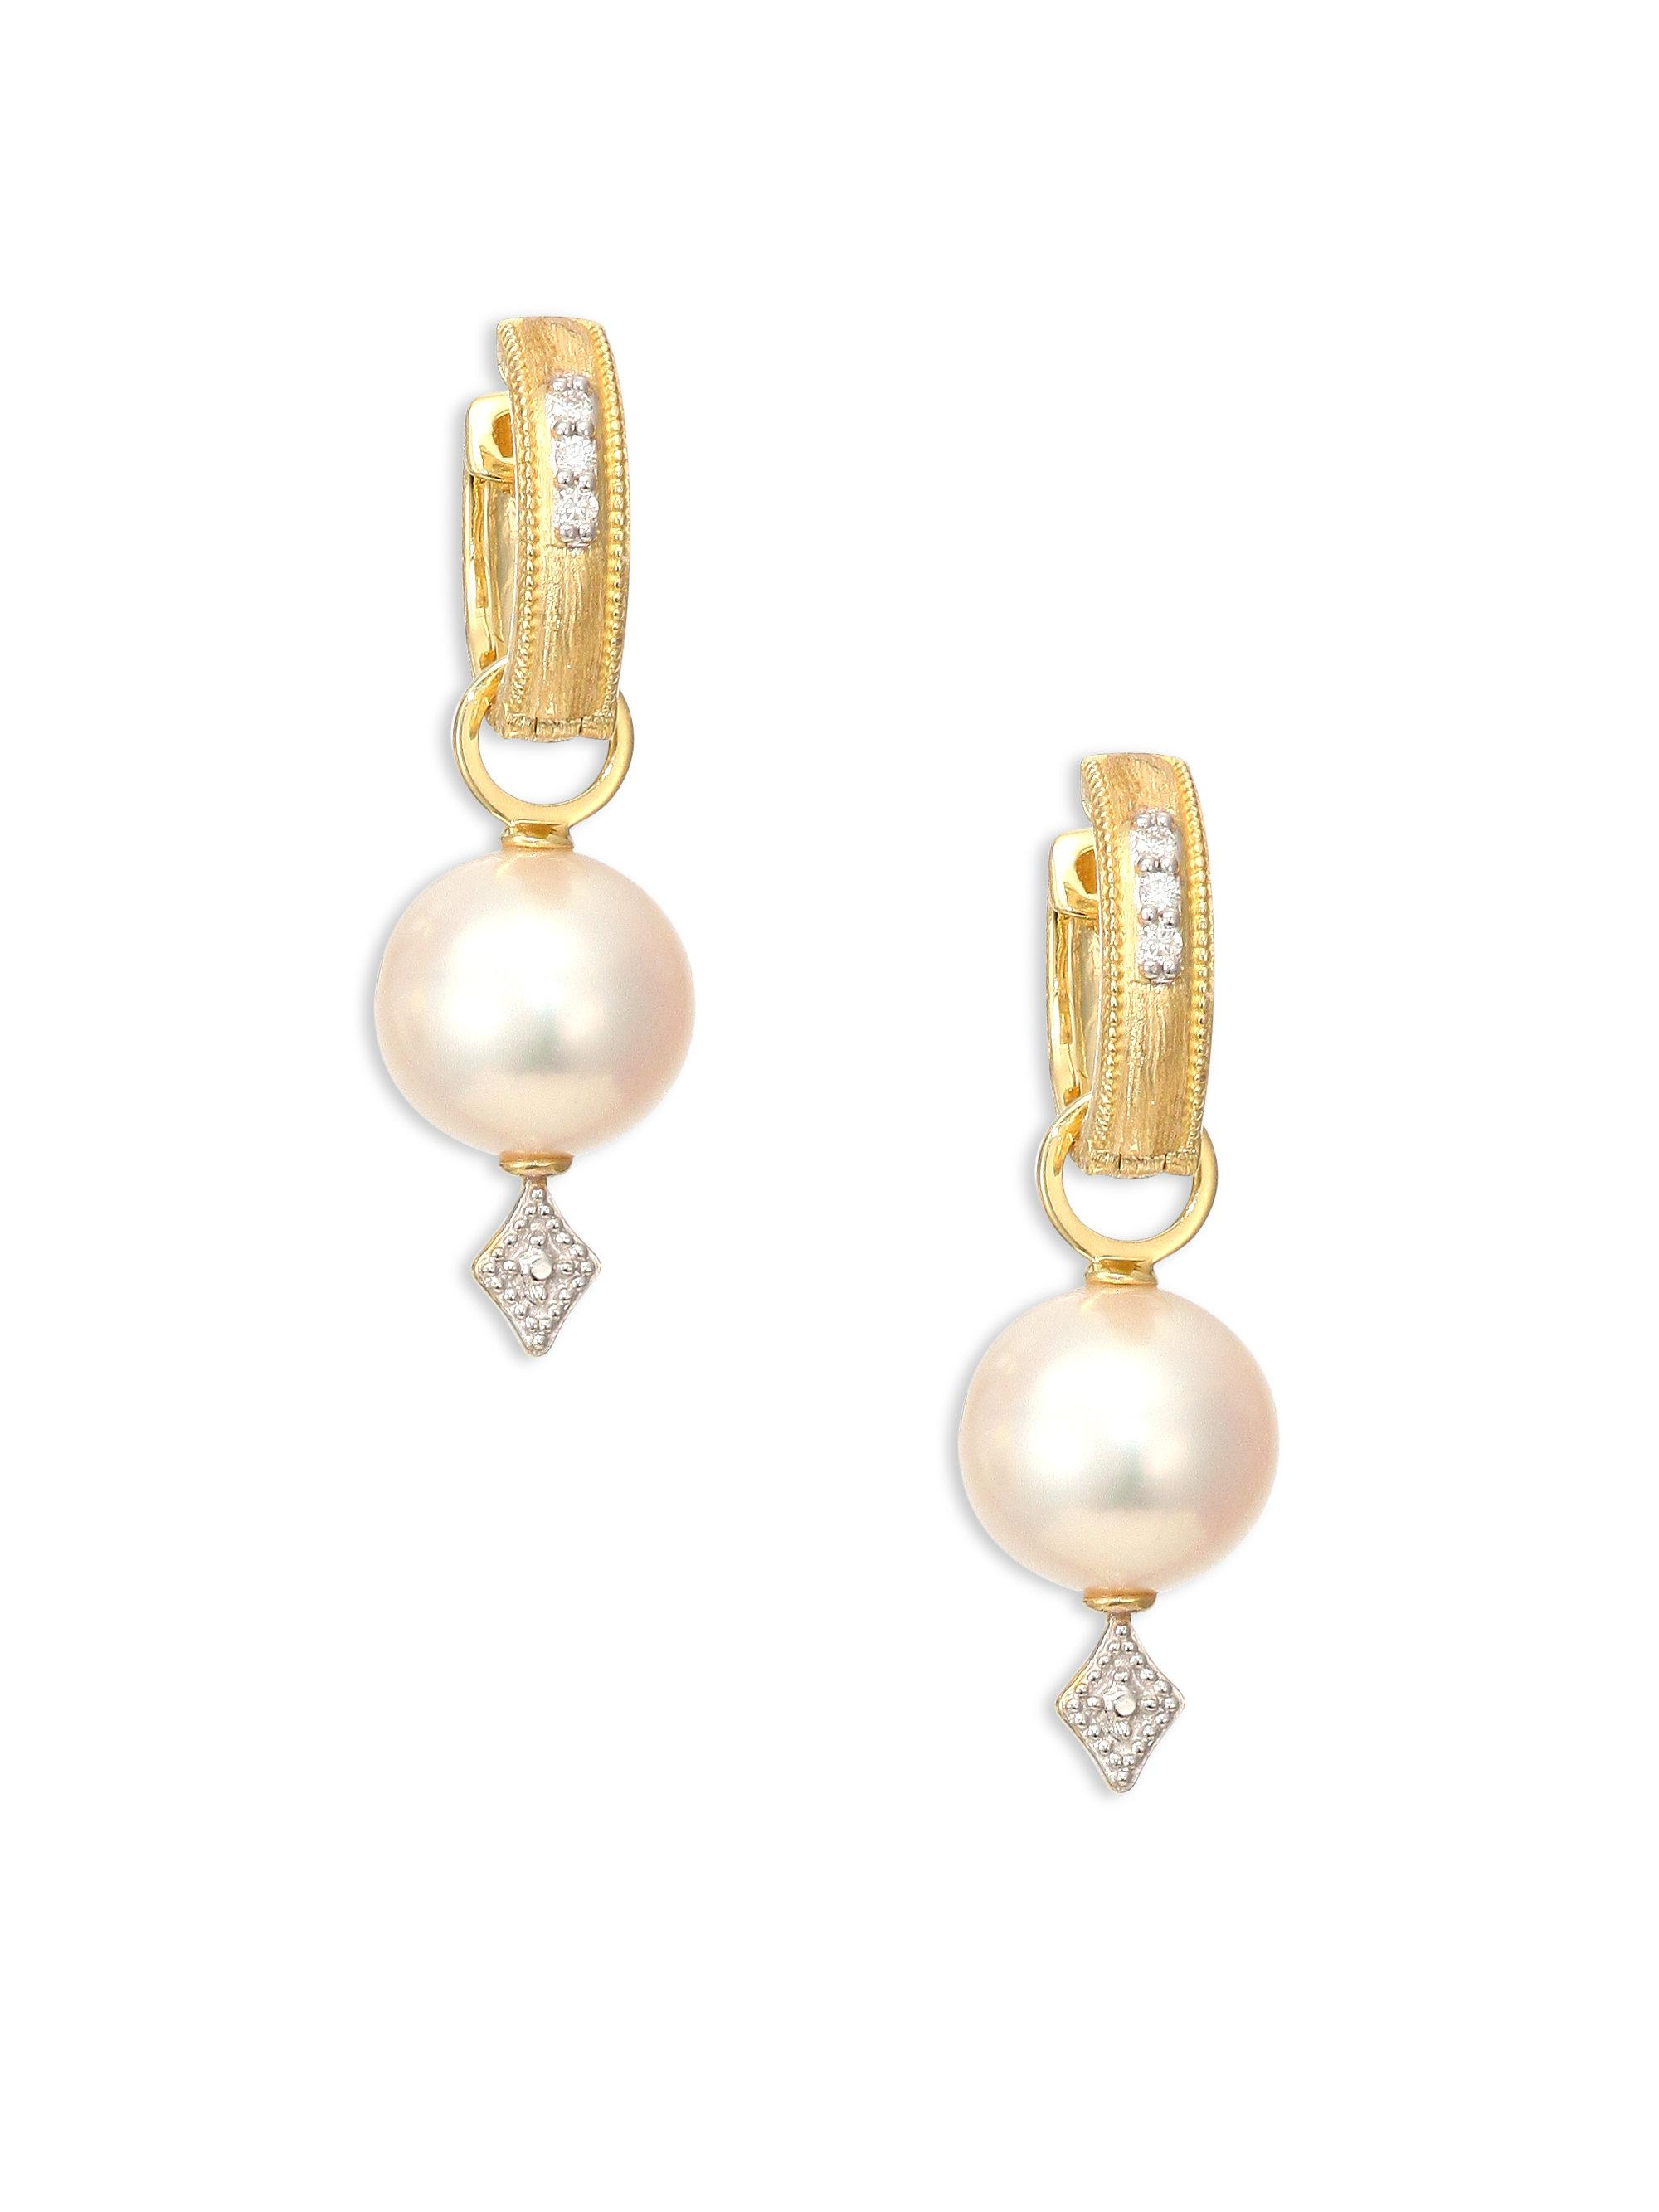 Jude Frances Lisse Large Pearl & Diamond Earring Charms, White Gold